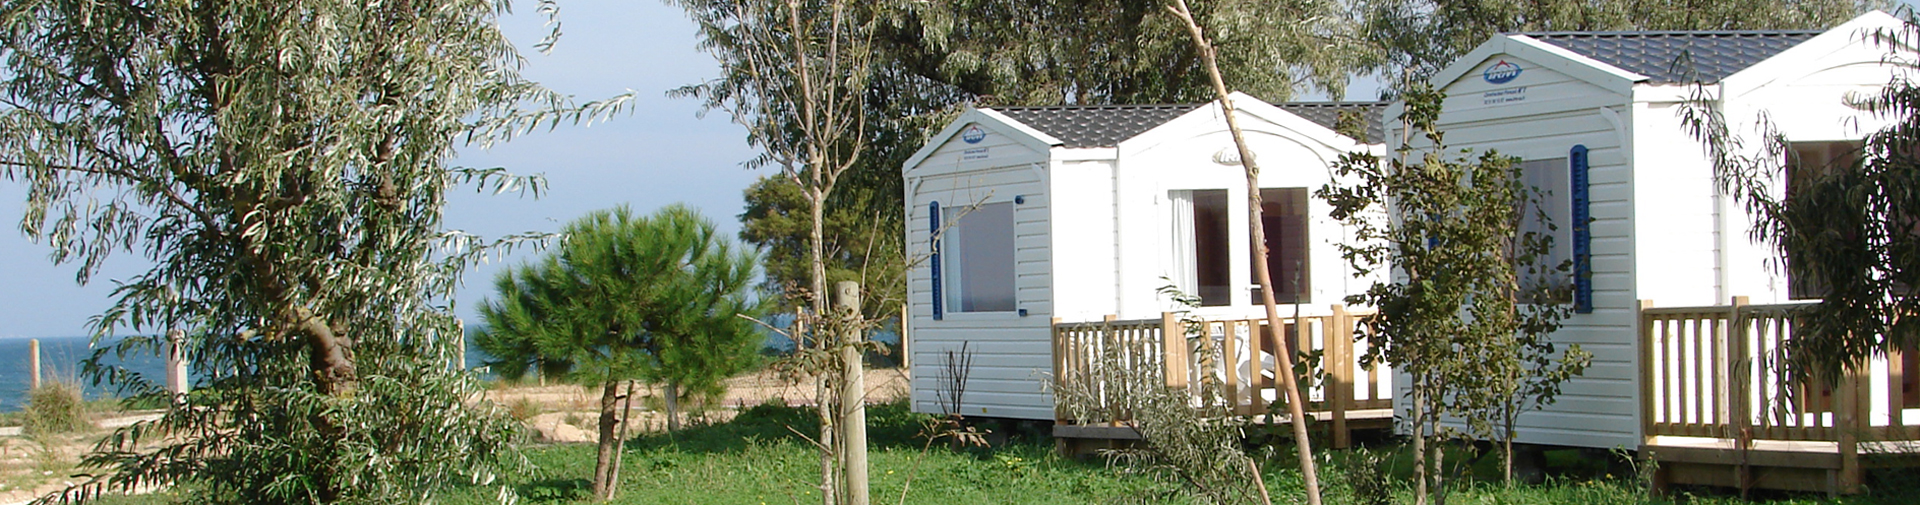 slide-modele-6-location-mobilhome-4-pers-30m2-camping-oleron.jpg